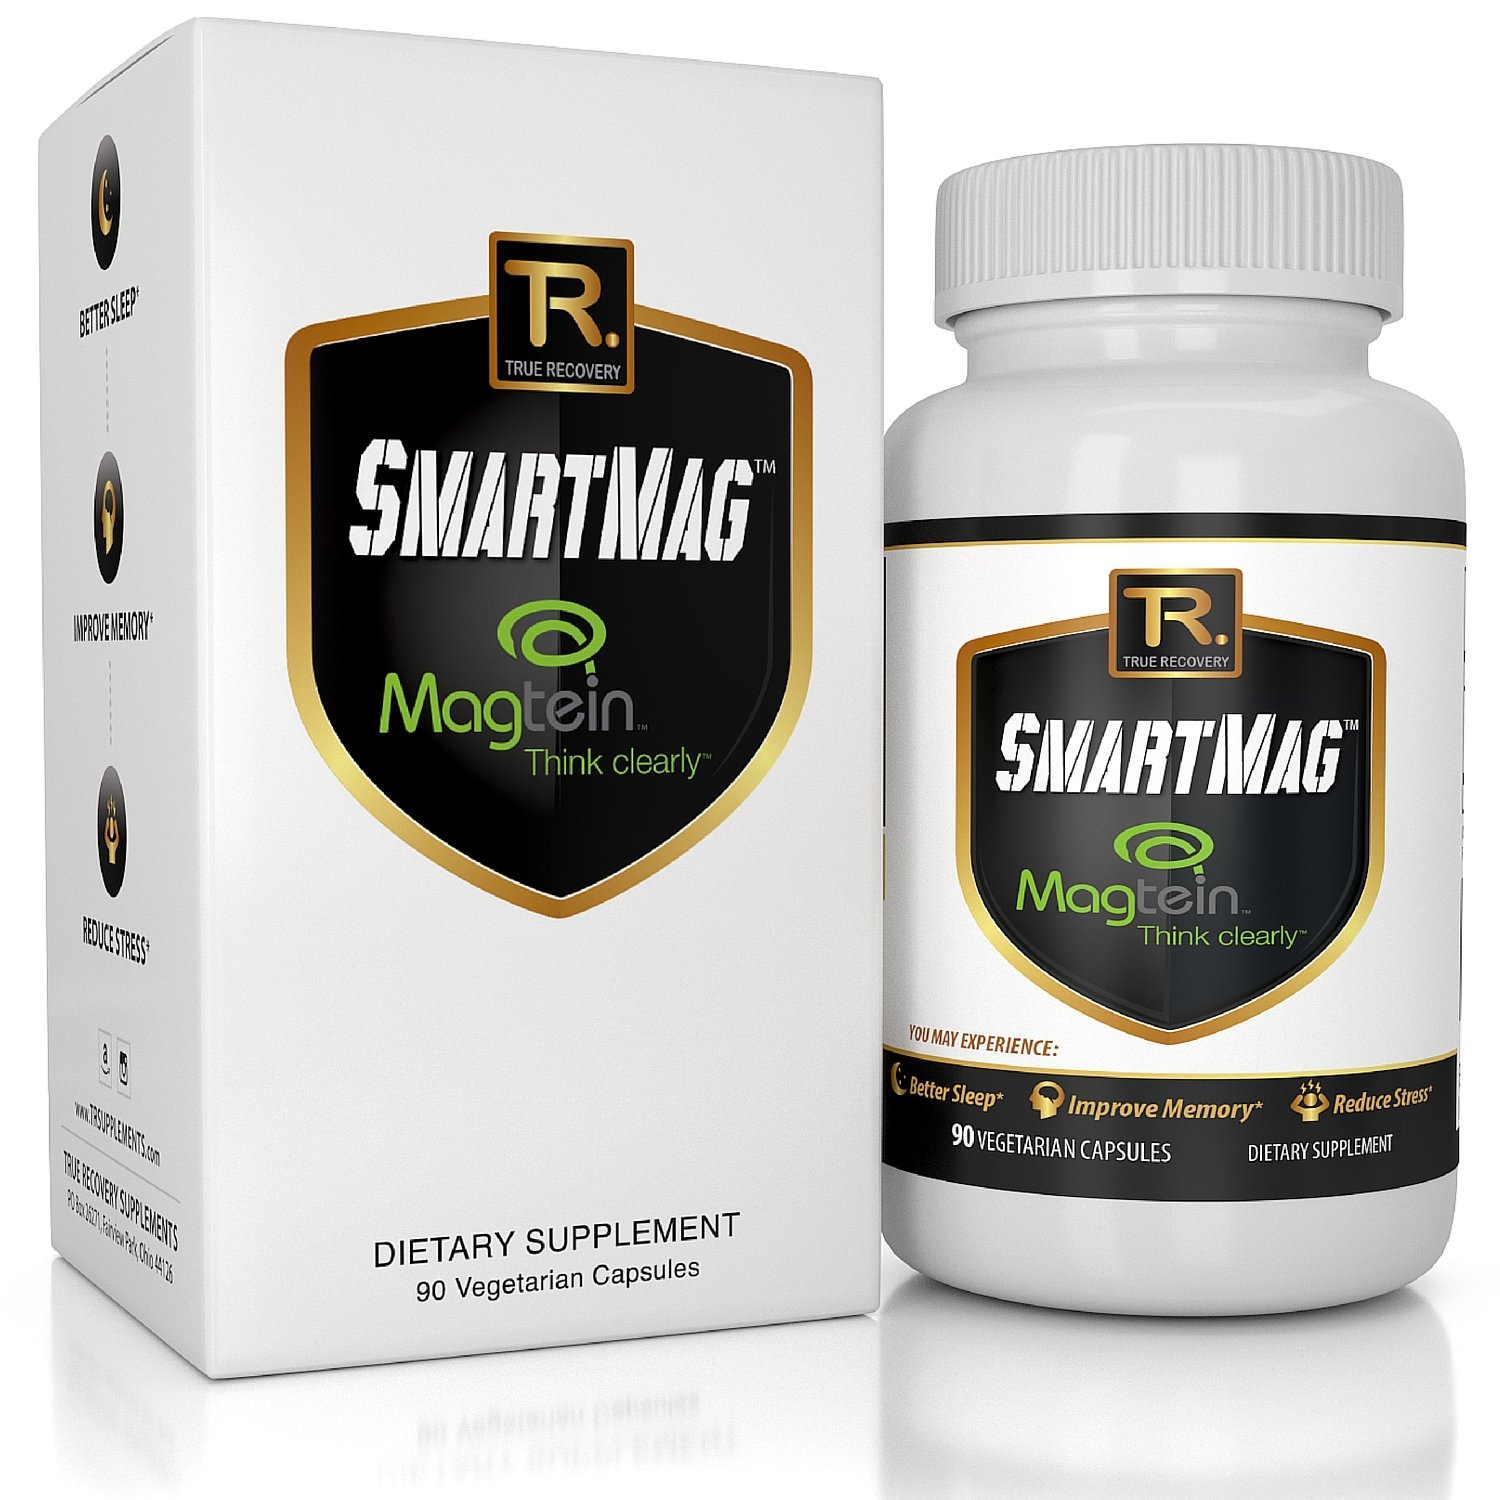 Magnesium Threonate (Magtein) + Taurate & Glycinate For Improved Memory, Brain Function, Sleep, and Heart Health - 90 Vegetarian Capsules   Best L Threonate Supplement by True Recovery